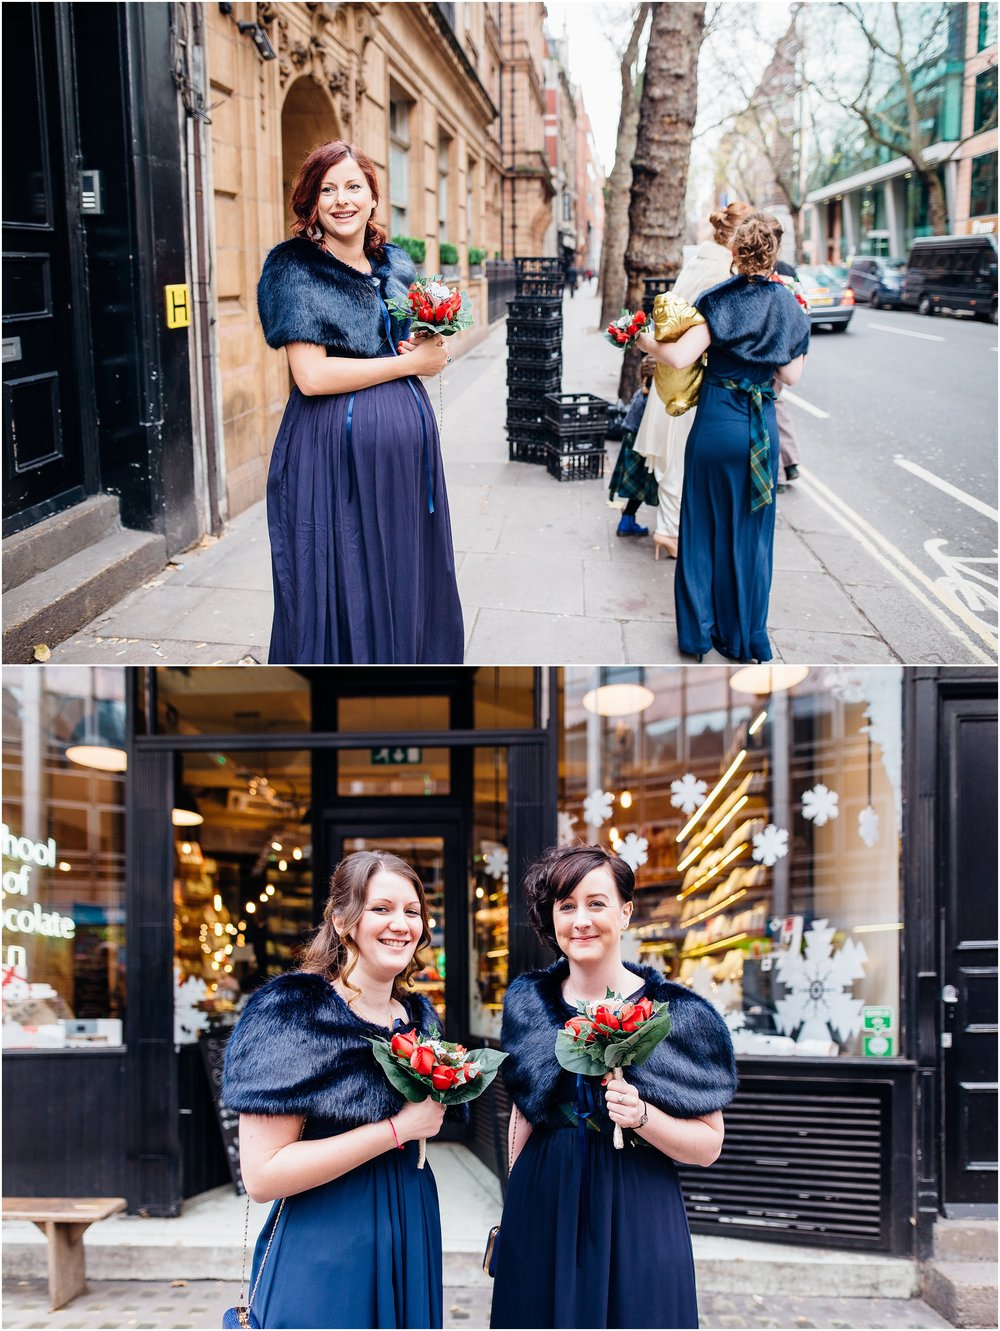 Bloomsbury Bowling london wedding photographer_0022.jpg